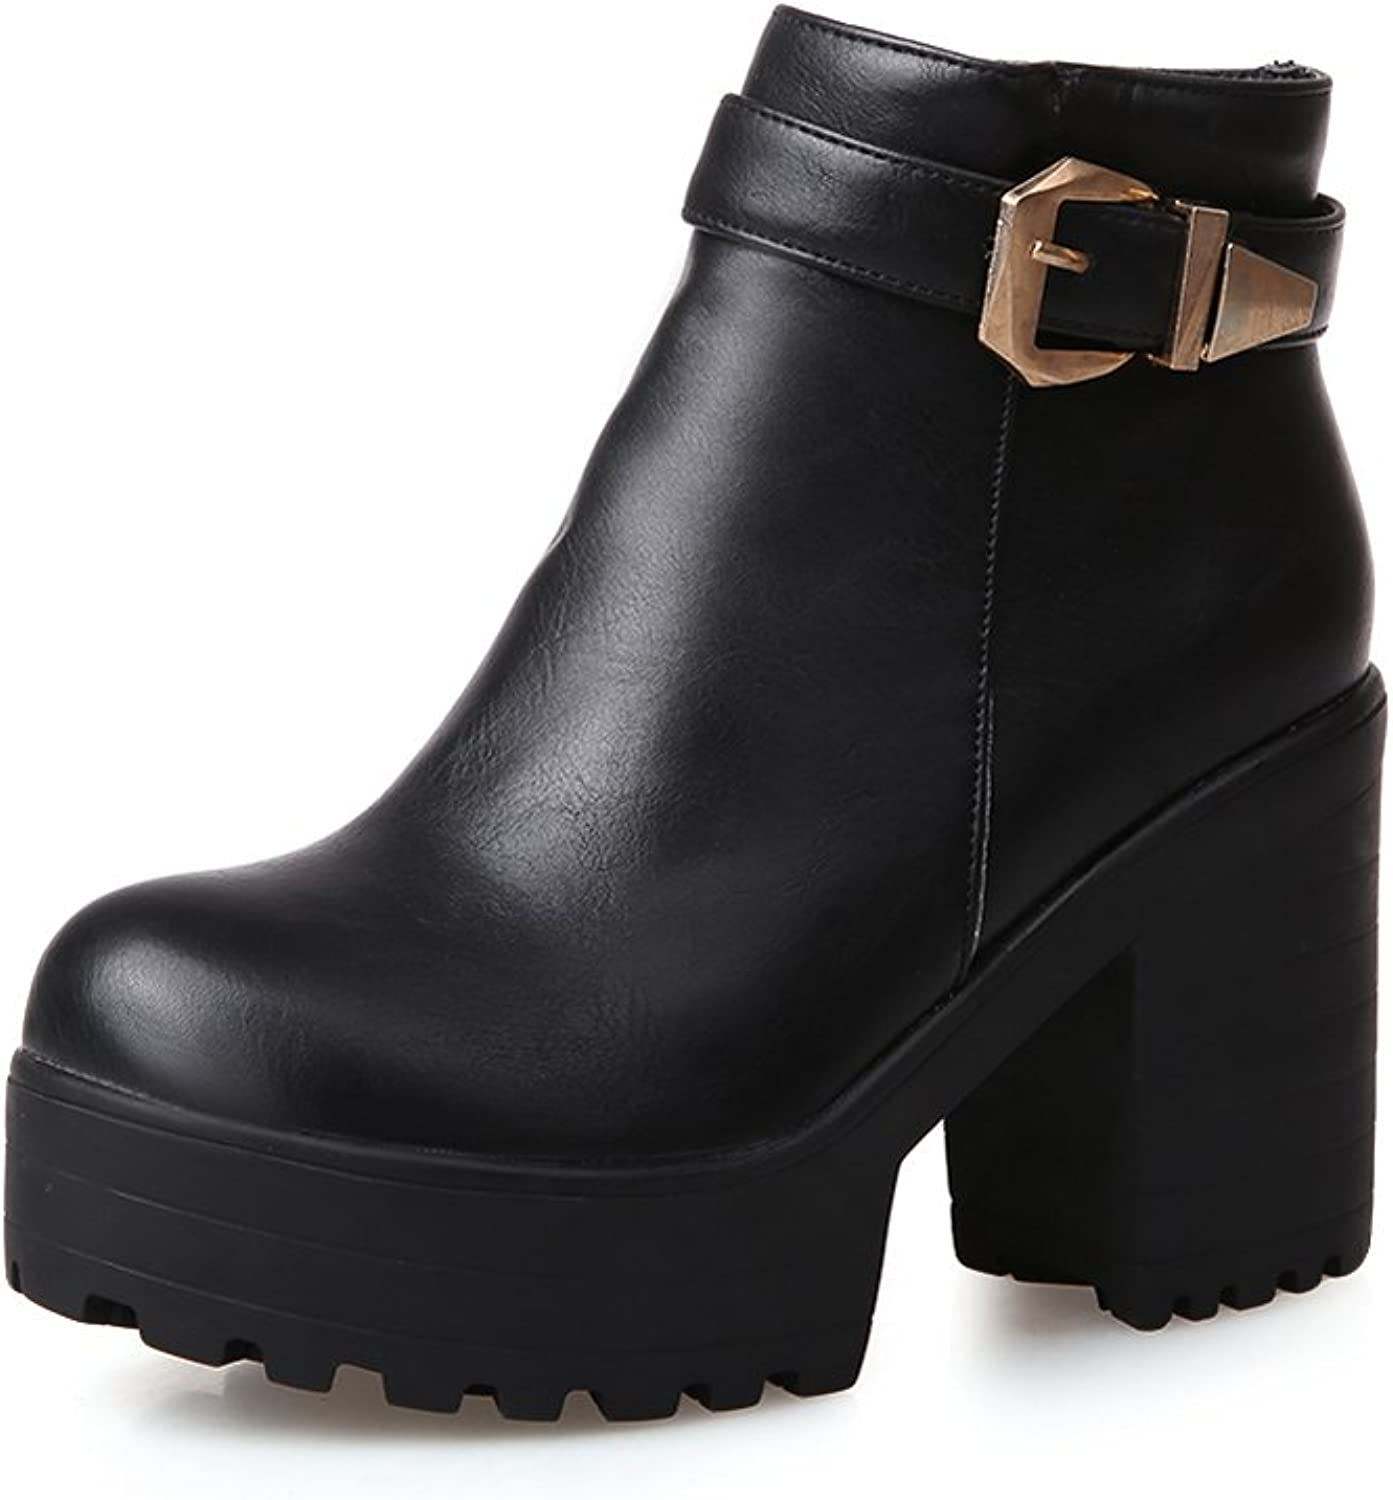 Lucksender Womens Round Toe Platform High Chunky Heels Ankle Martin Boots With Metal Buckles